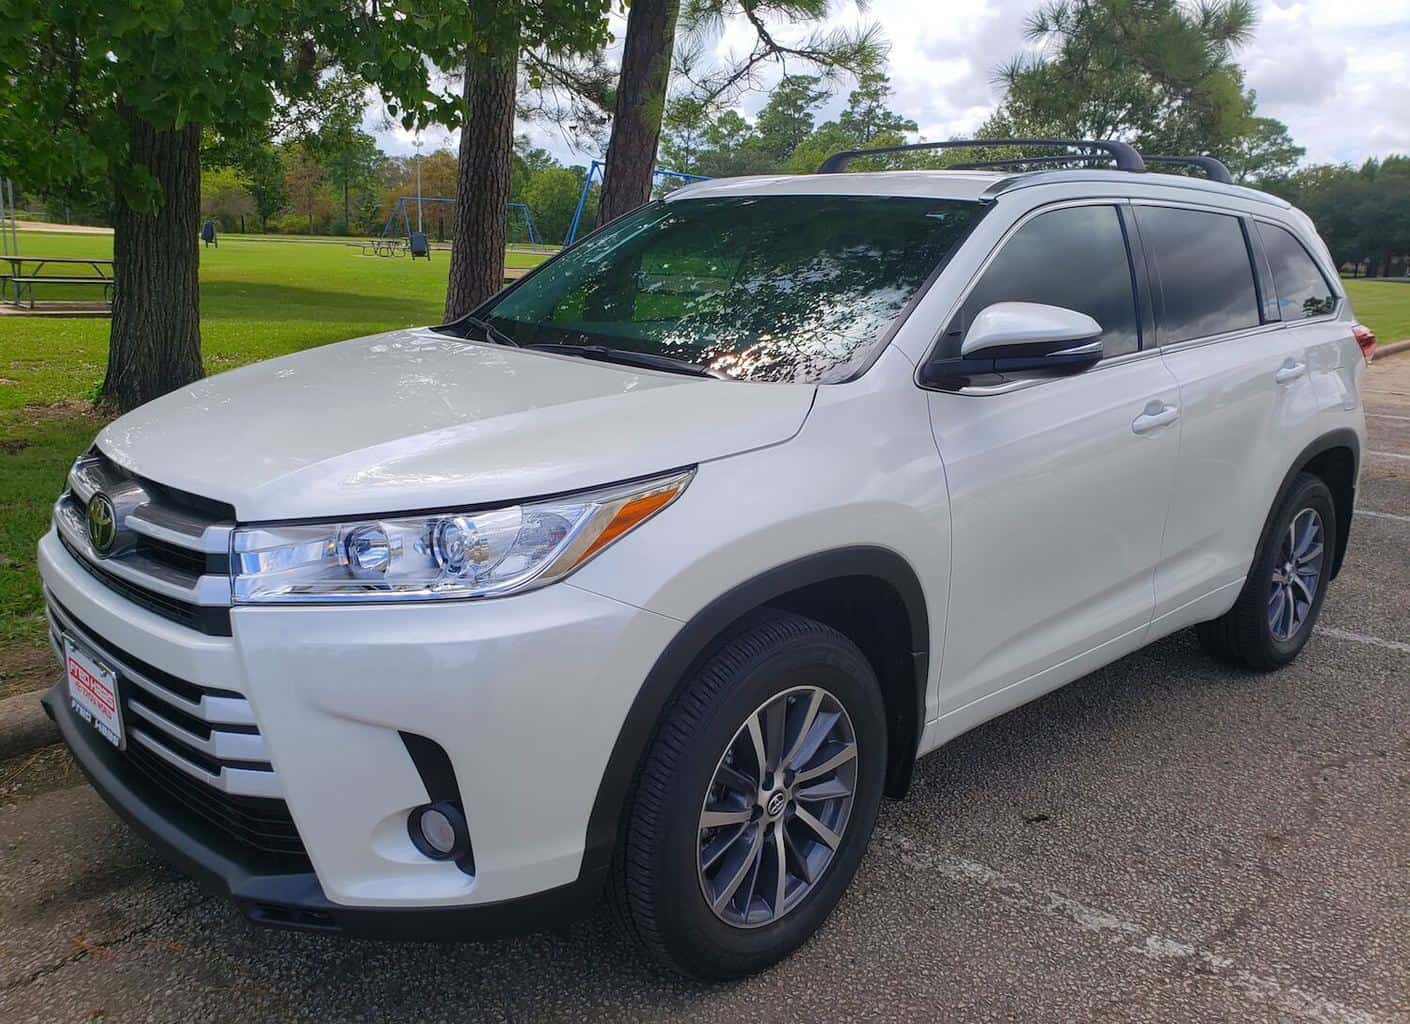 2018 Toyota Highlander XLE Packs A Lot of Cargo and Passengers Photo Gallery